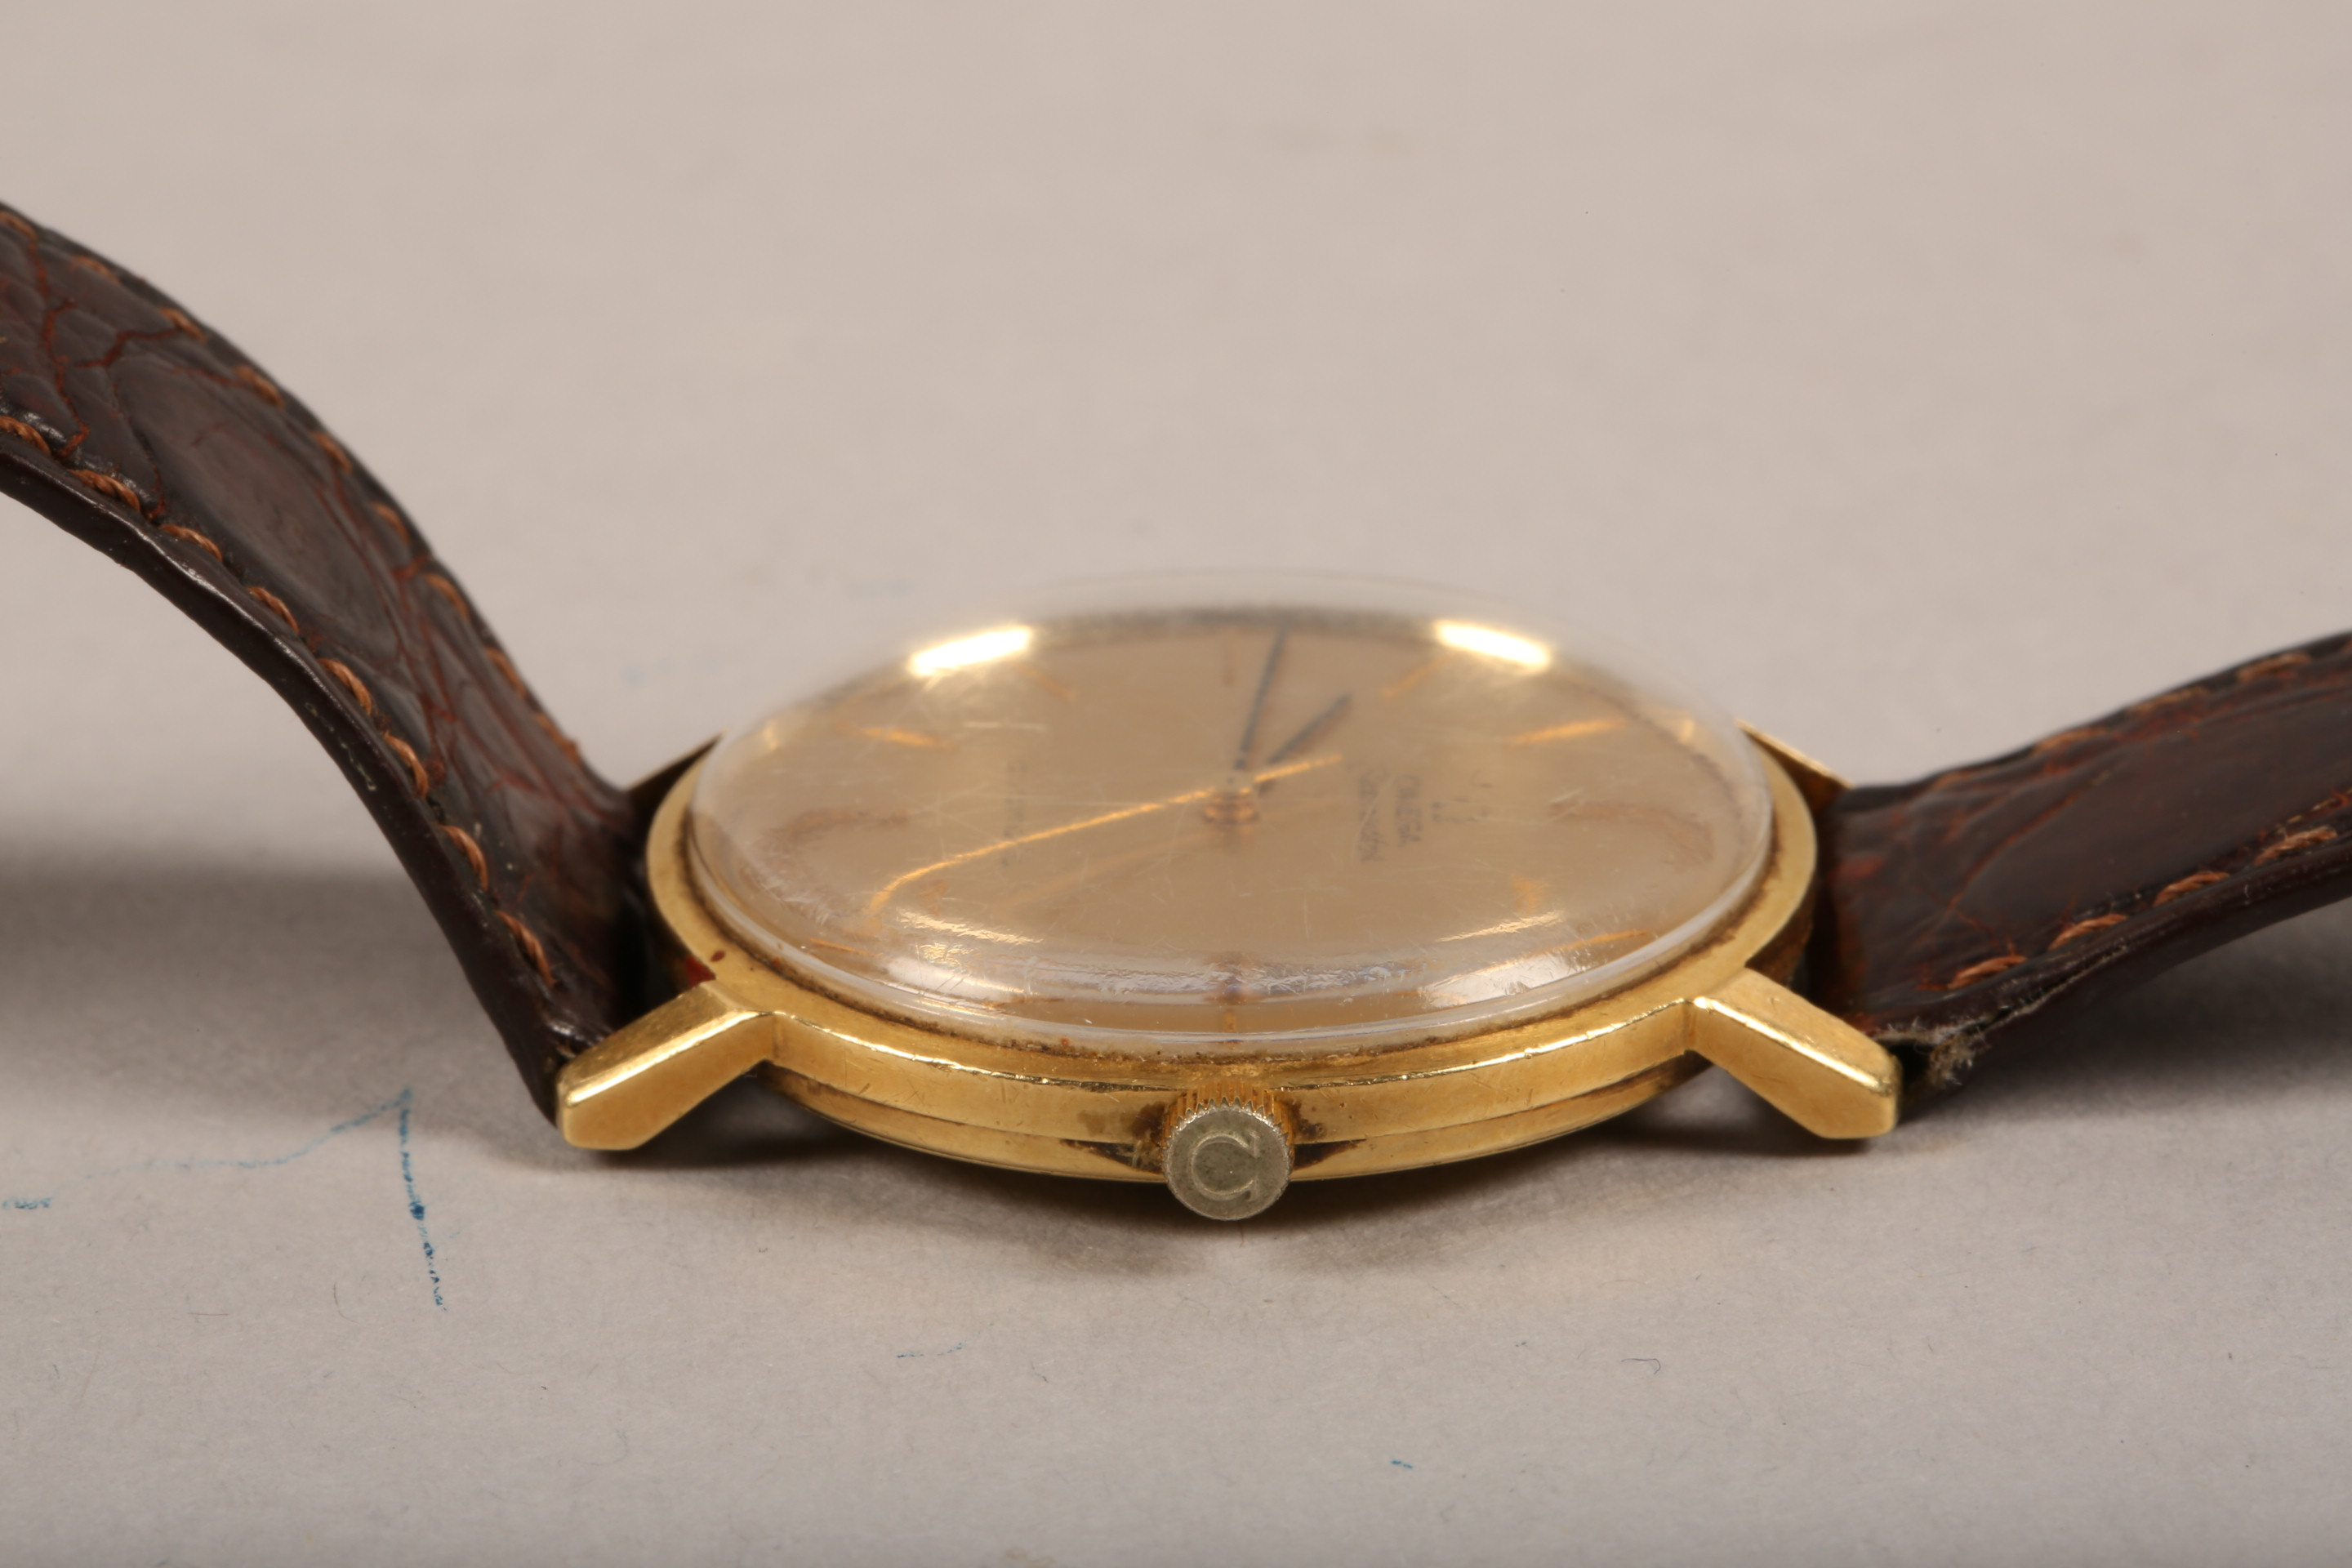 Gents 9 carat gold Omega Seamaster automatic wrist watch, dial with hour markers and sweeping - Image 10 of 10